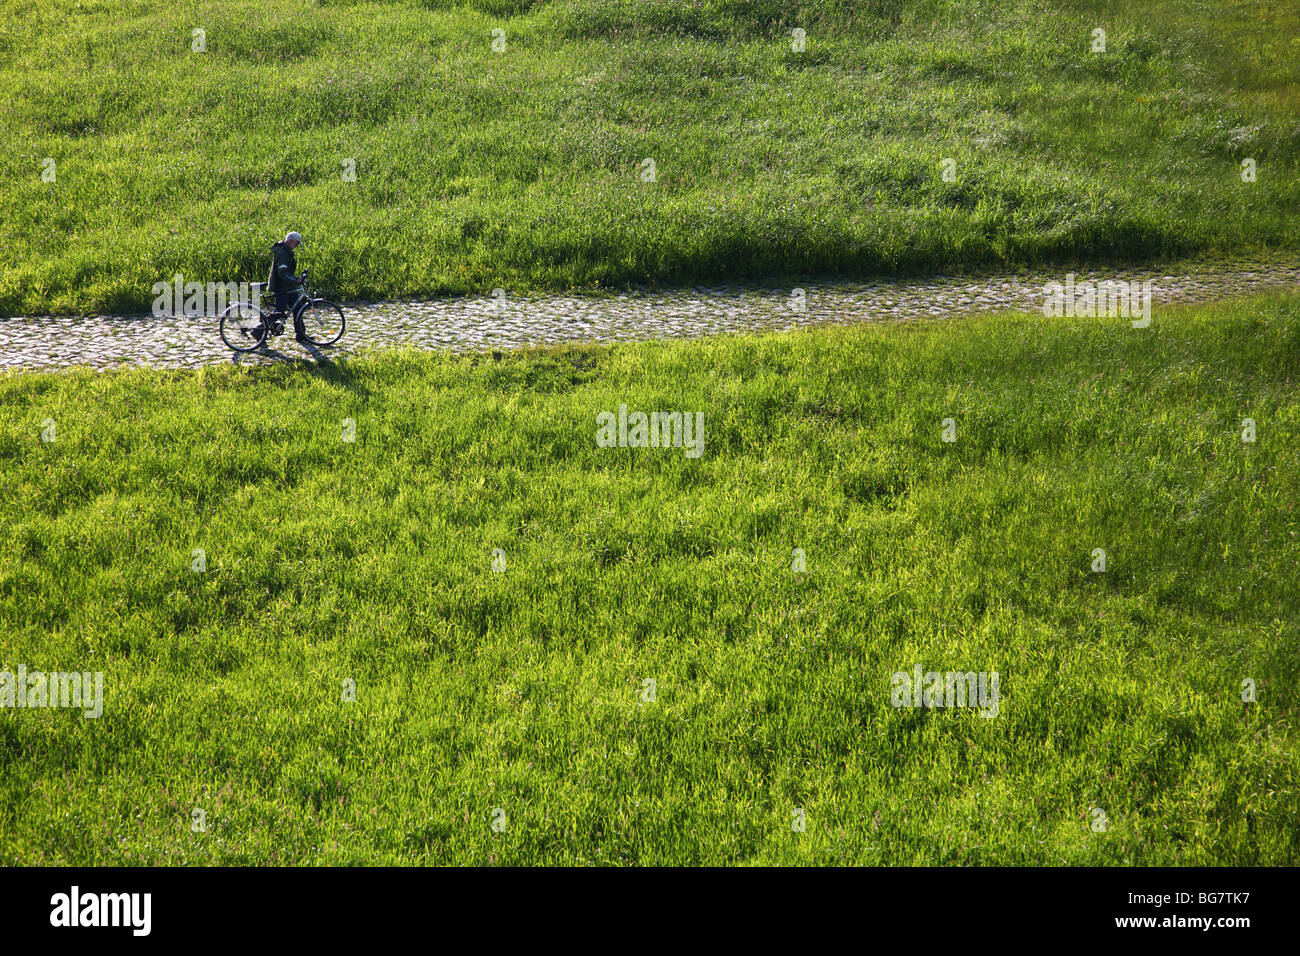 Germany, Saxony, Dresden, Elbe Riverbank, Cyclist - Stock Image